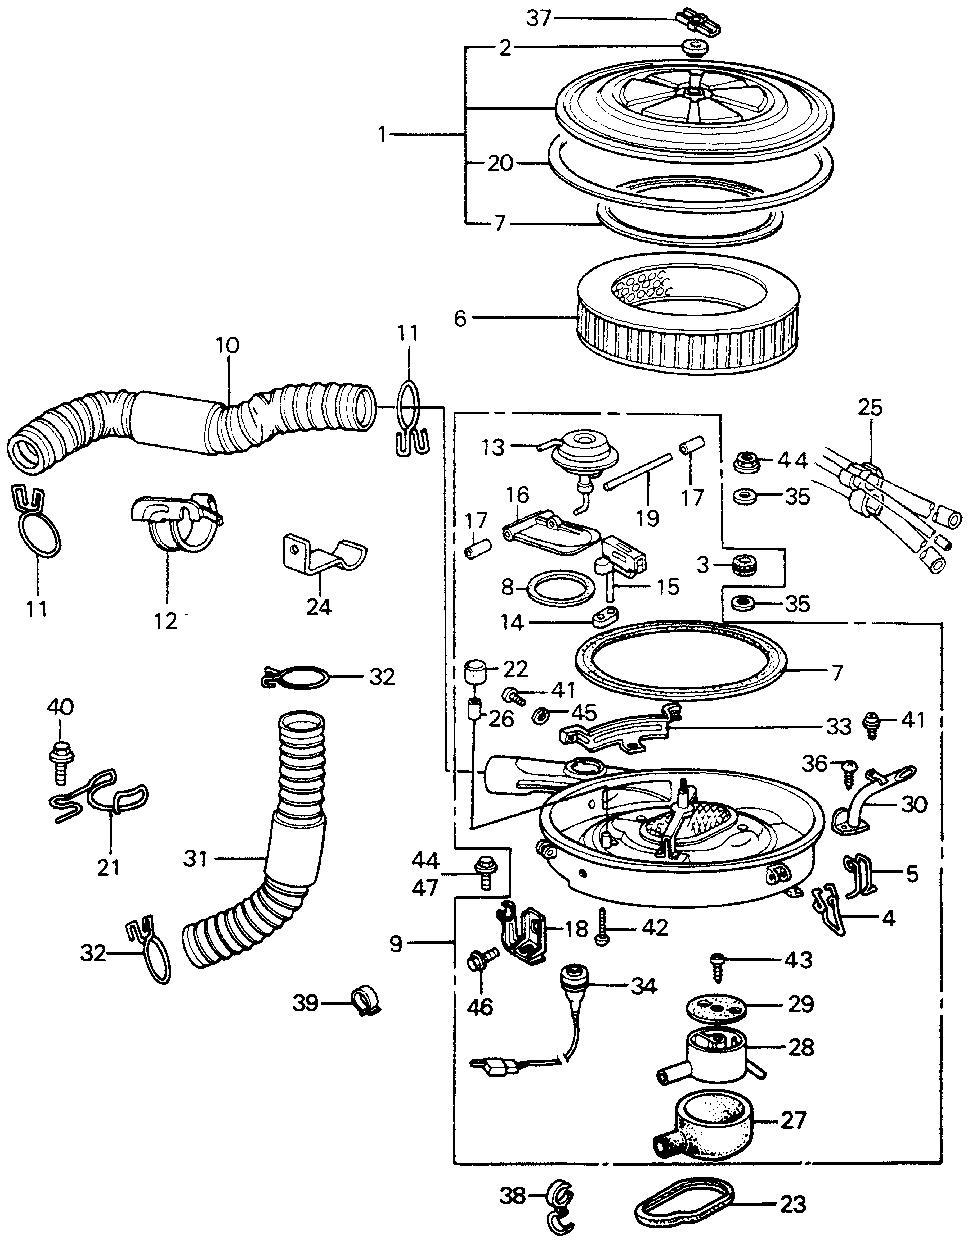 17221-PA5-700 - GASKET, ELEMENT